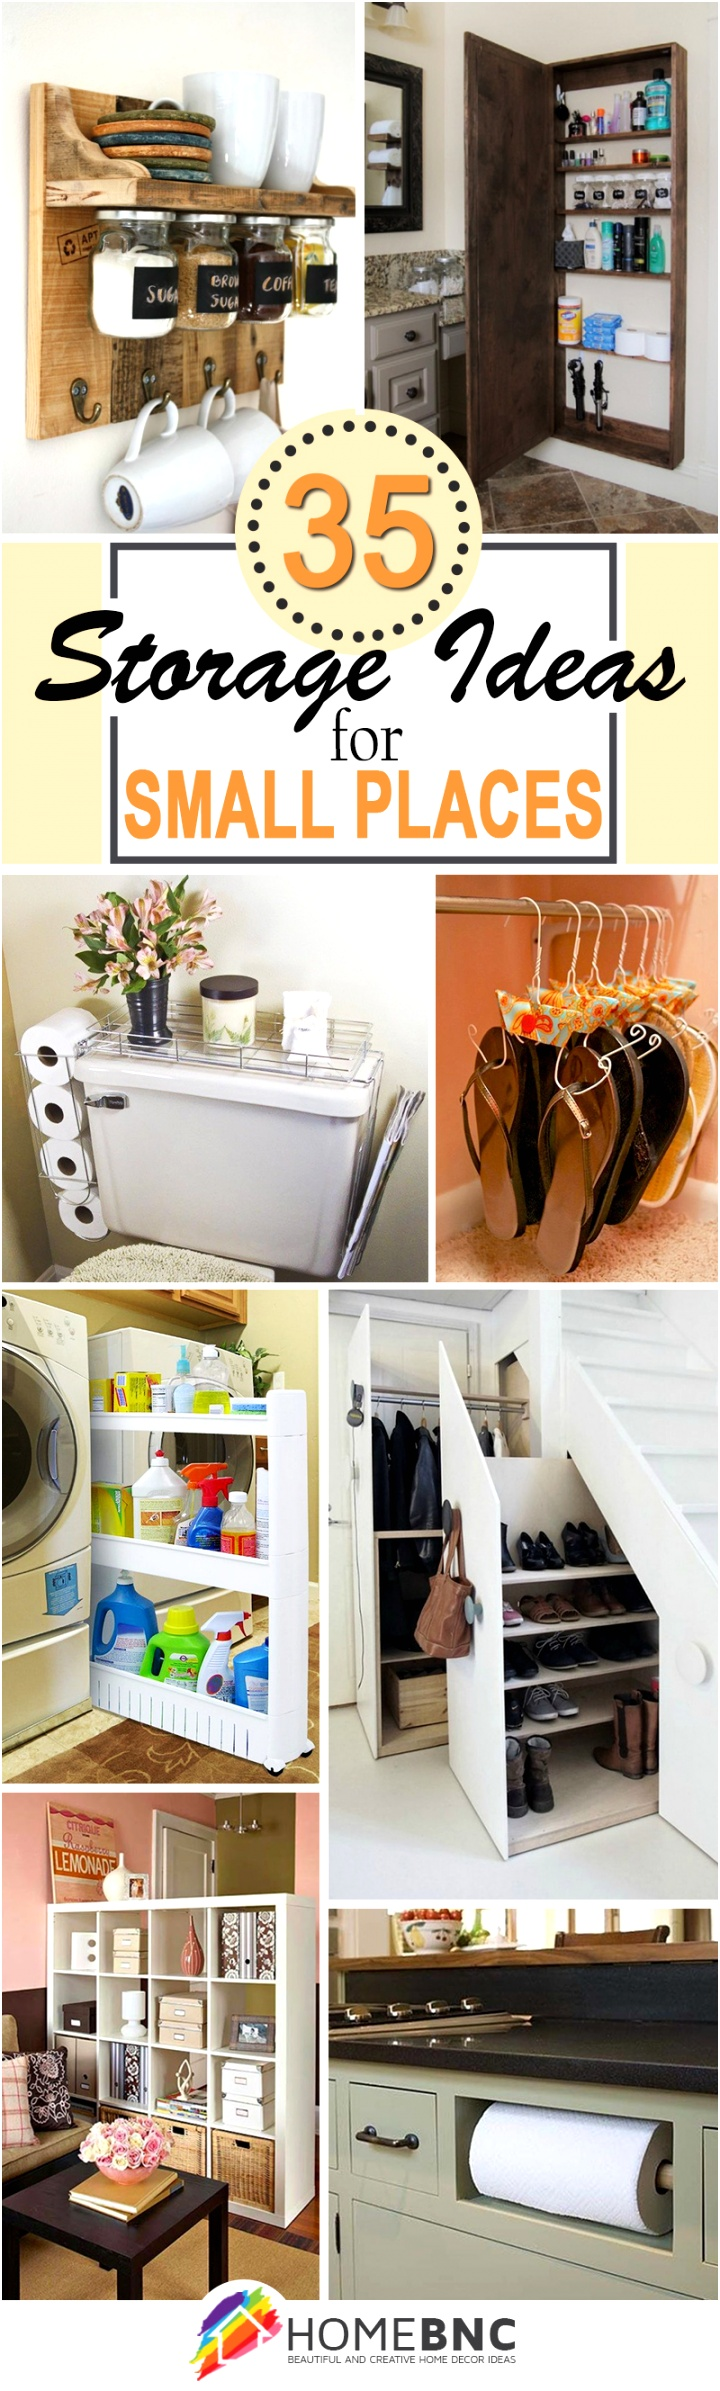 storage ideas for small spaces pinterest share homebnc